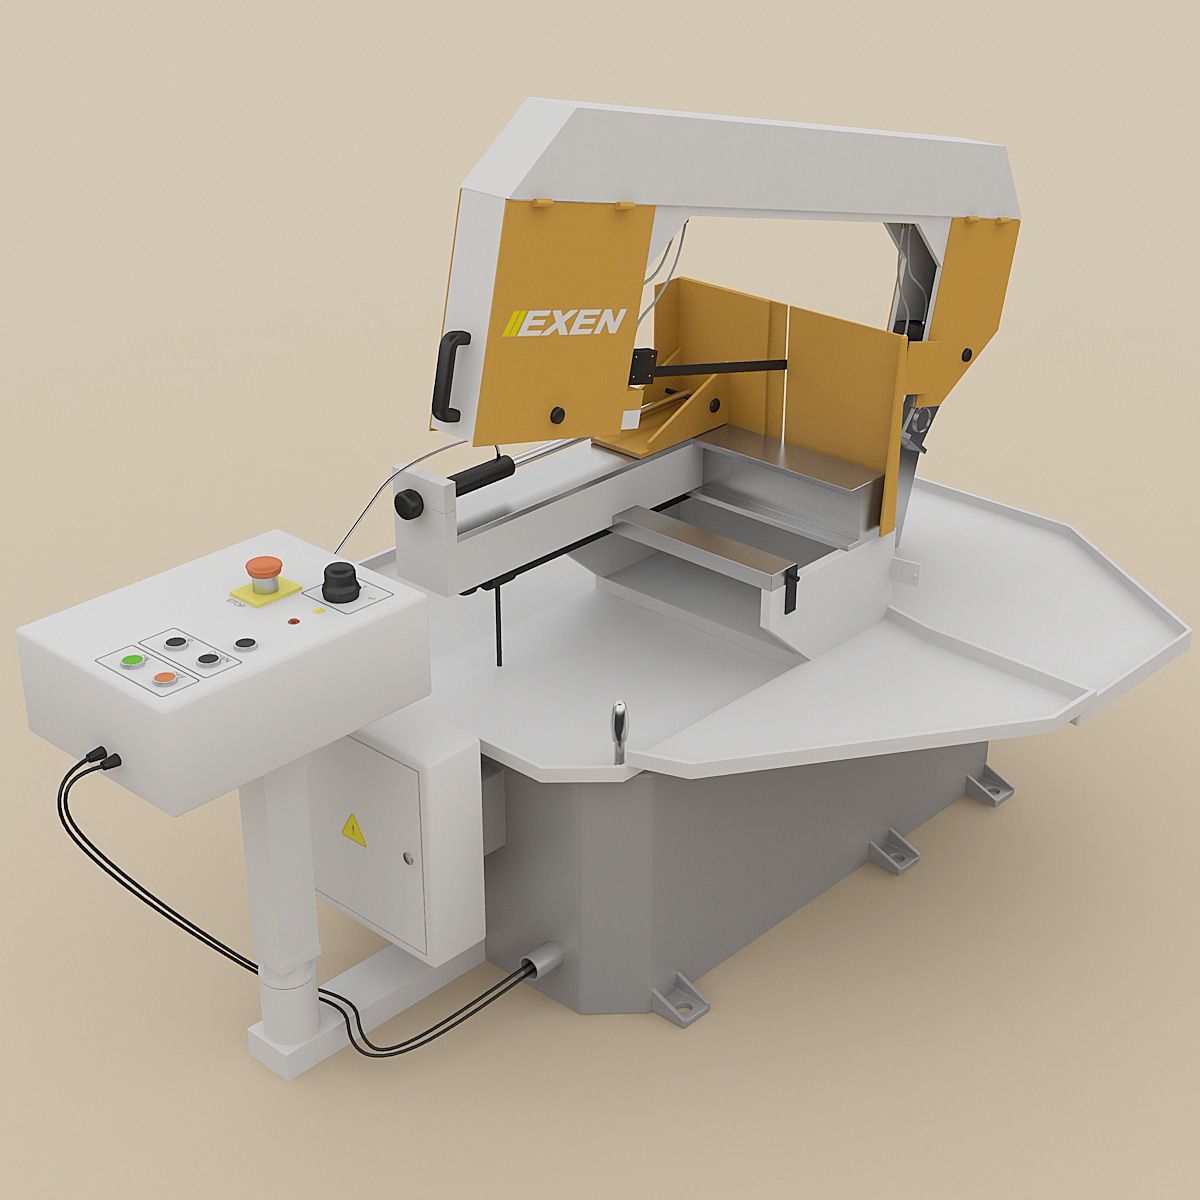 Band_Saw_Machine_8B230_001.jpg